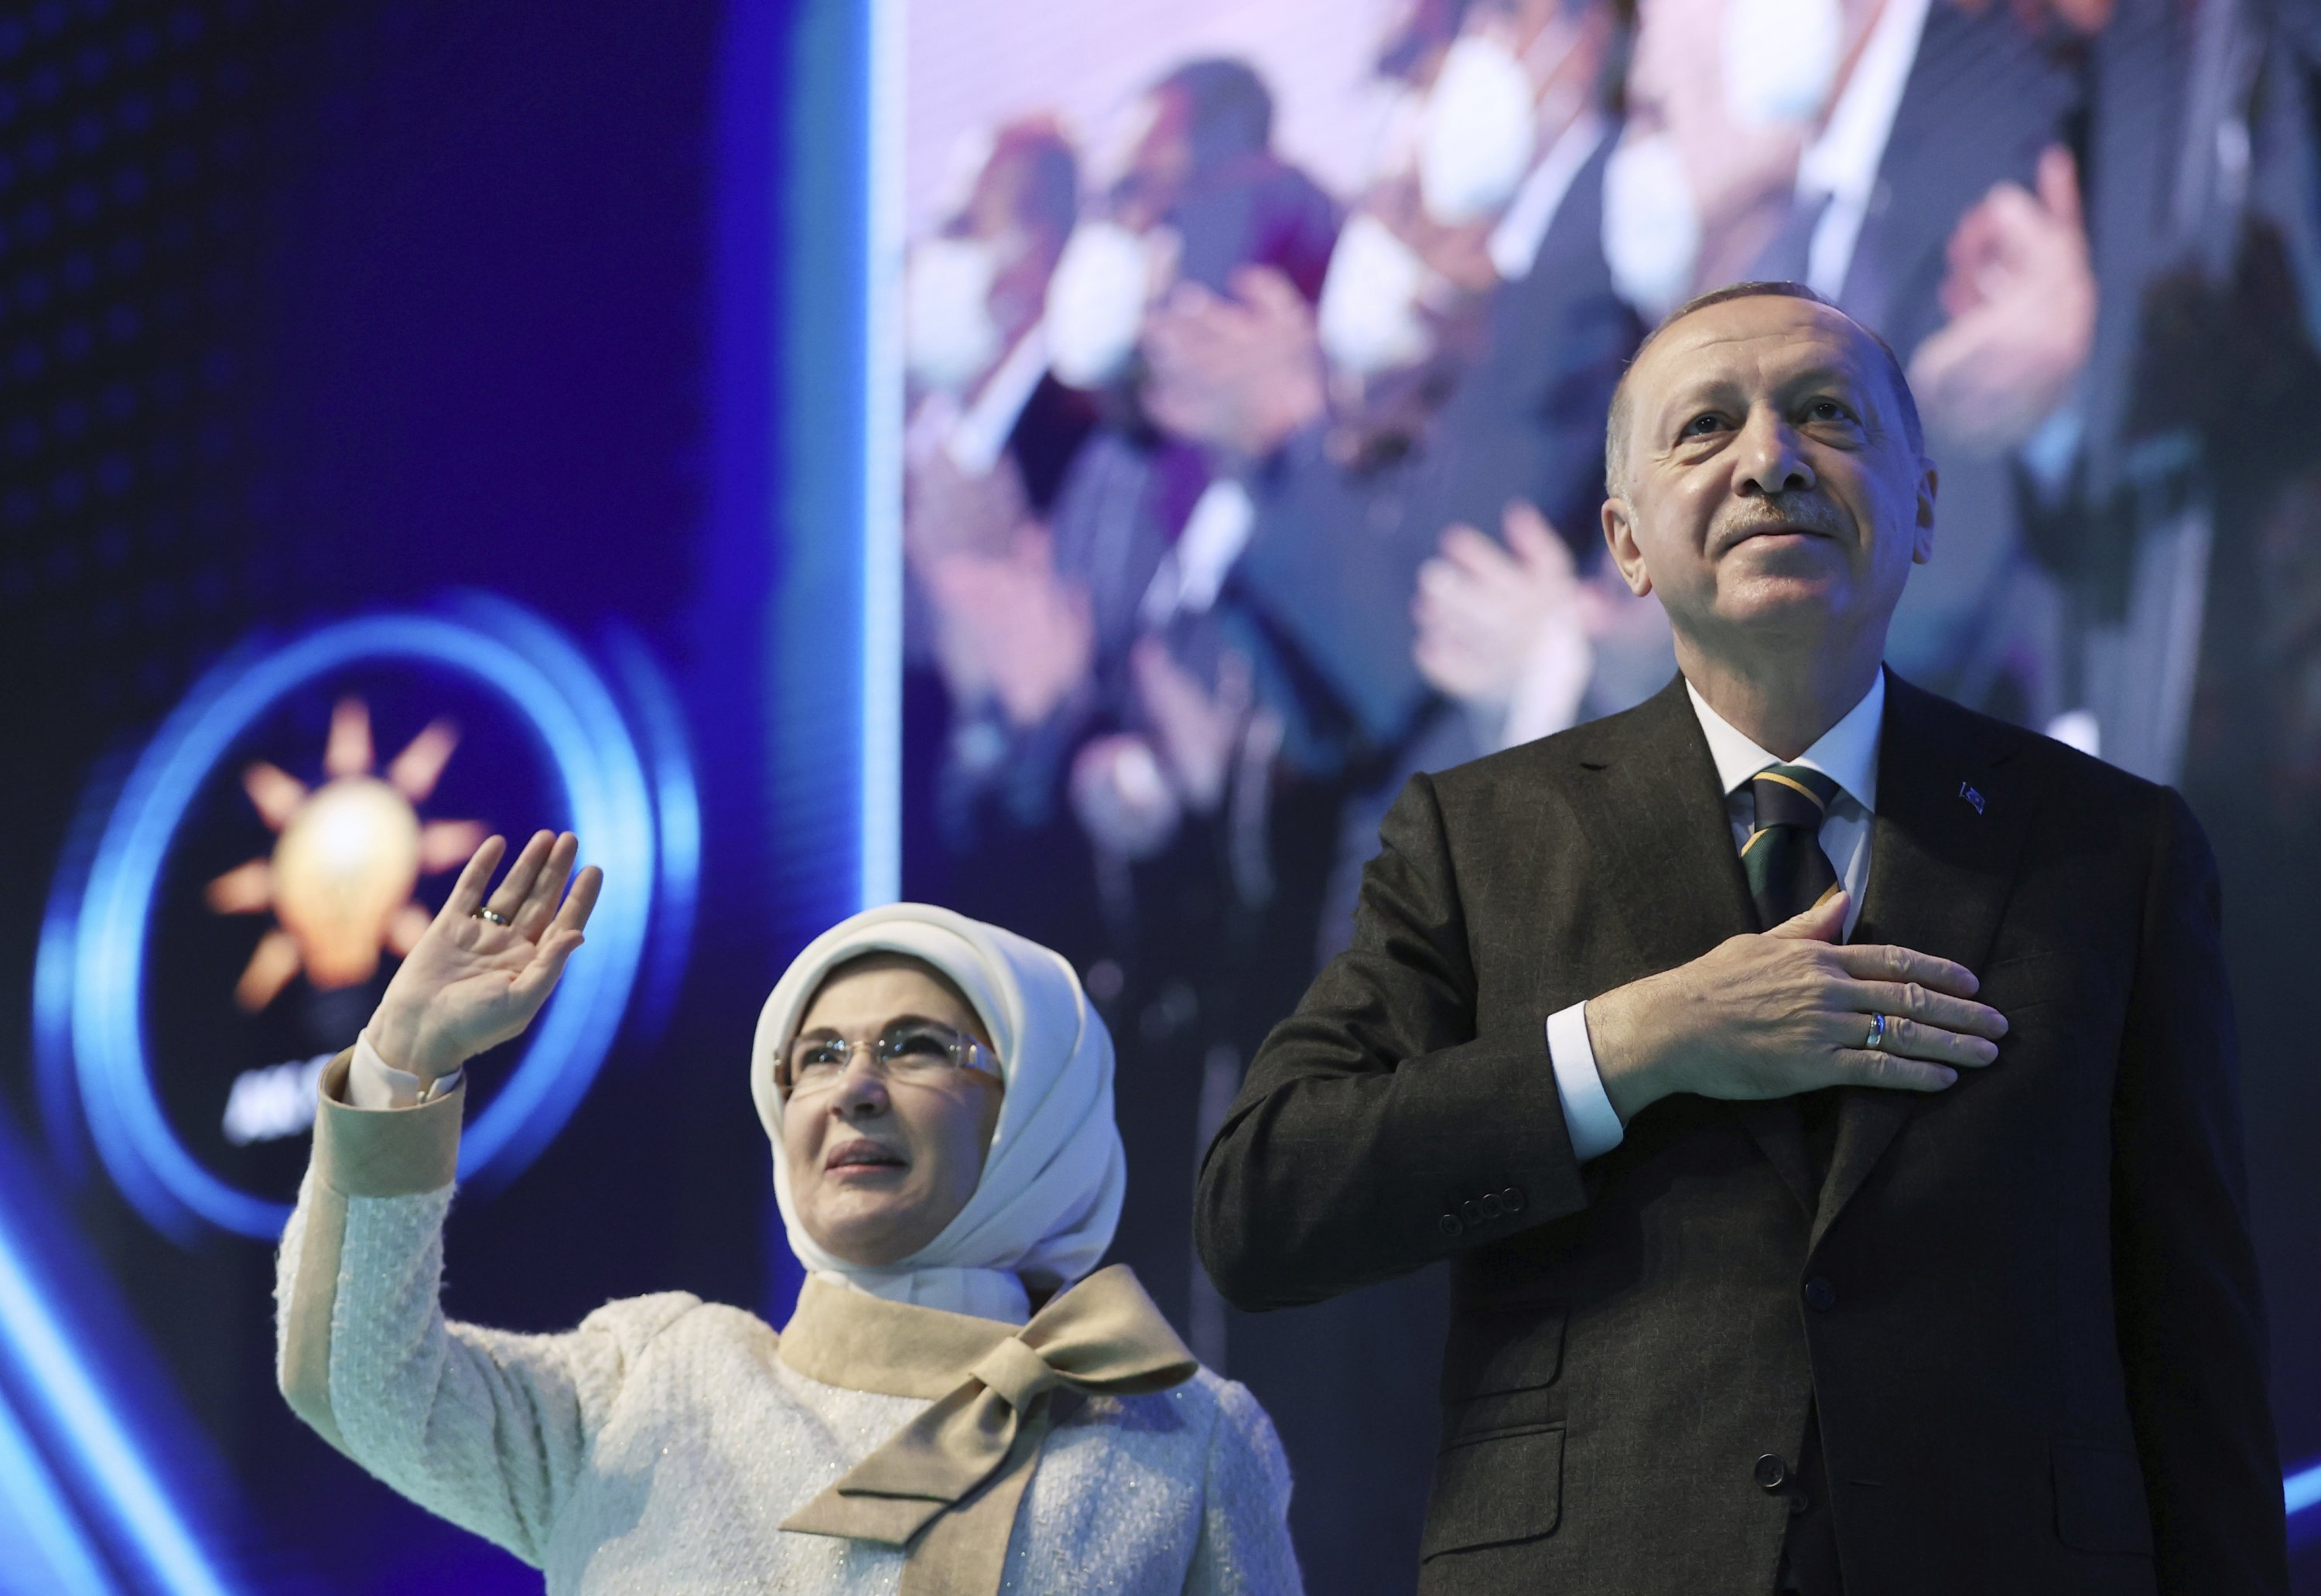 AK Party's manifesto for a stronger Turkey